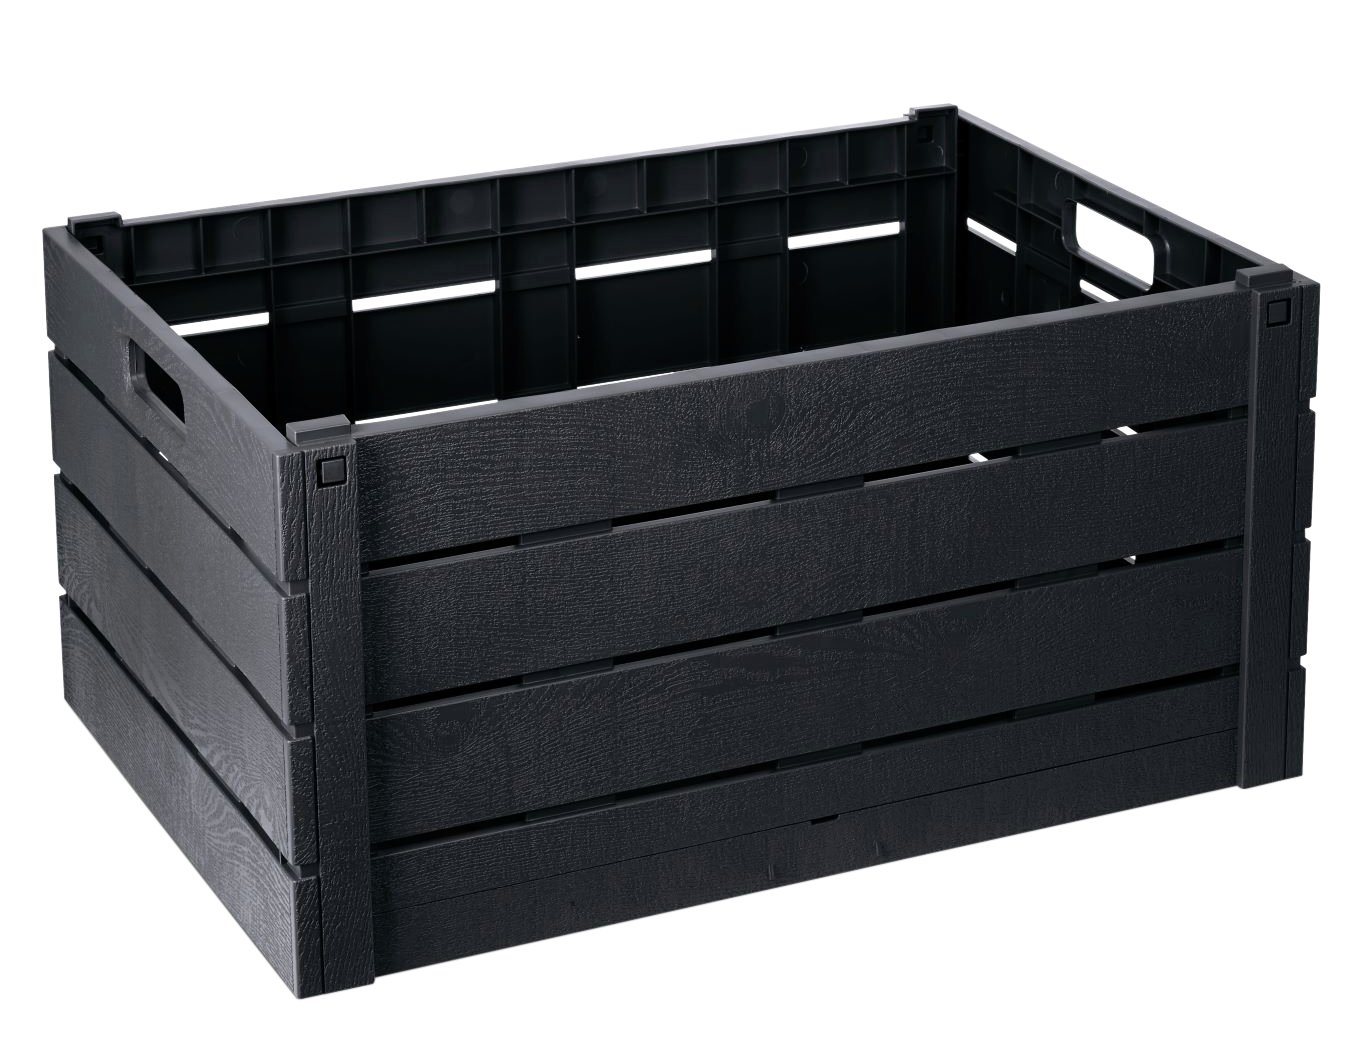 Strata 60 Litre Wood Effect Folding Crate - Charcoal